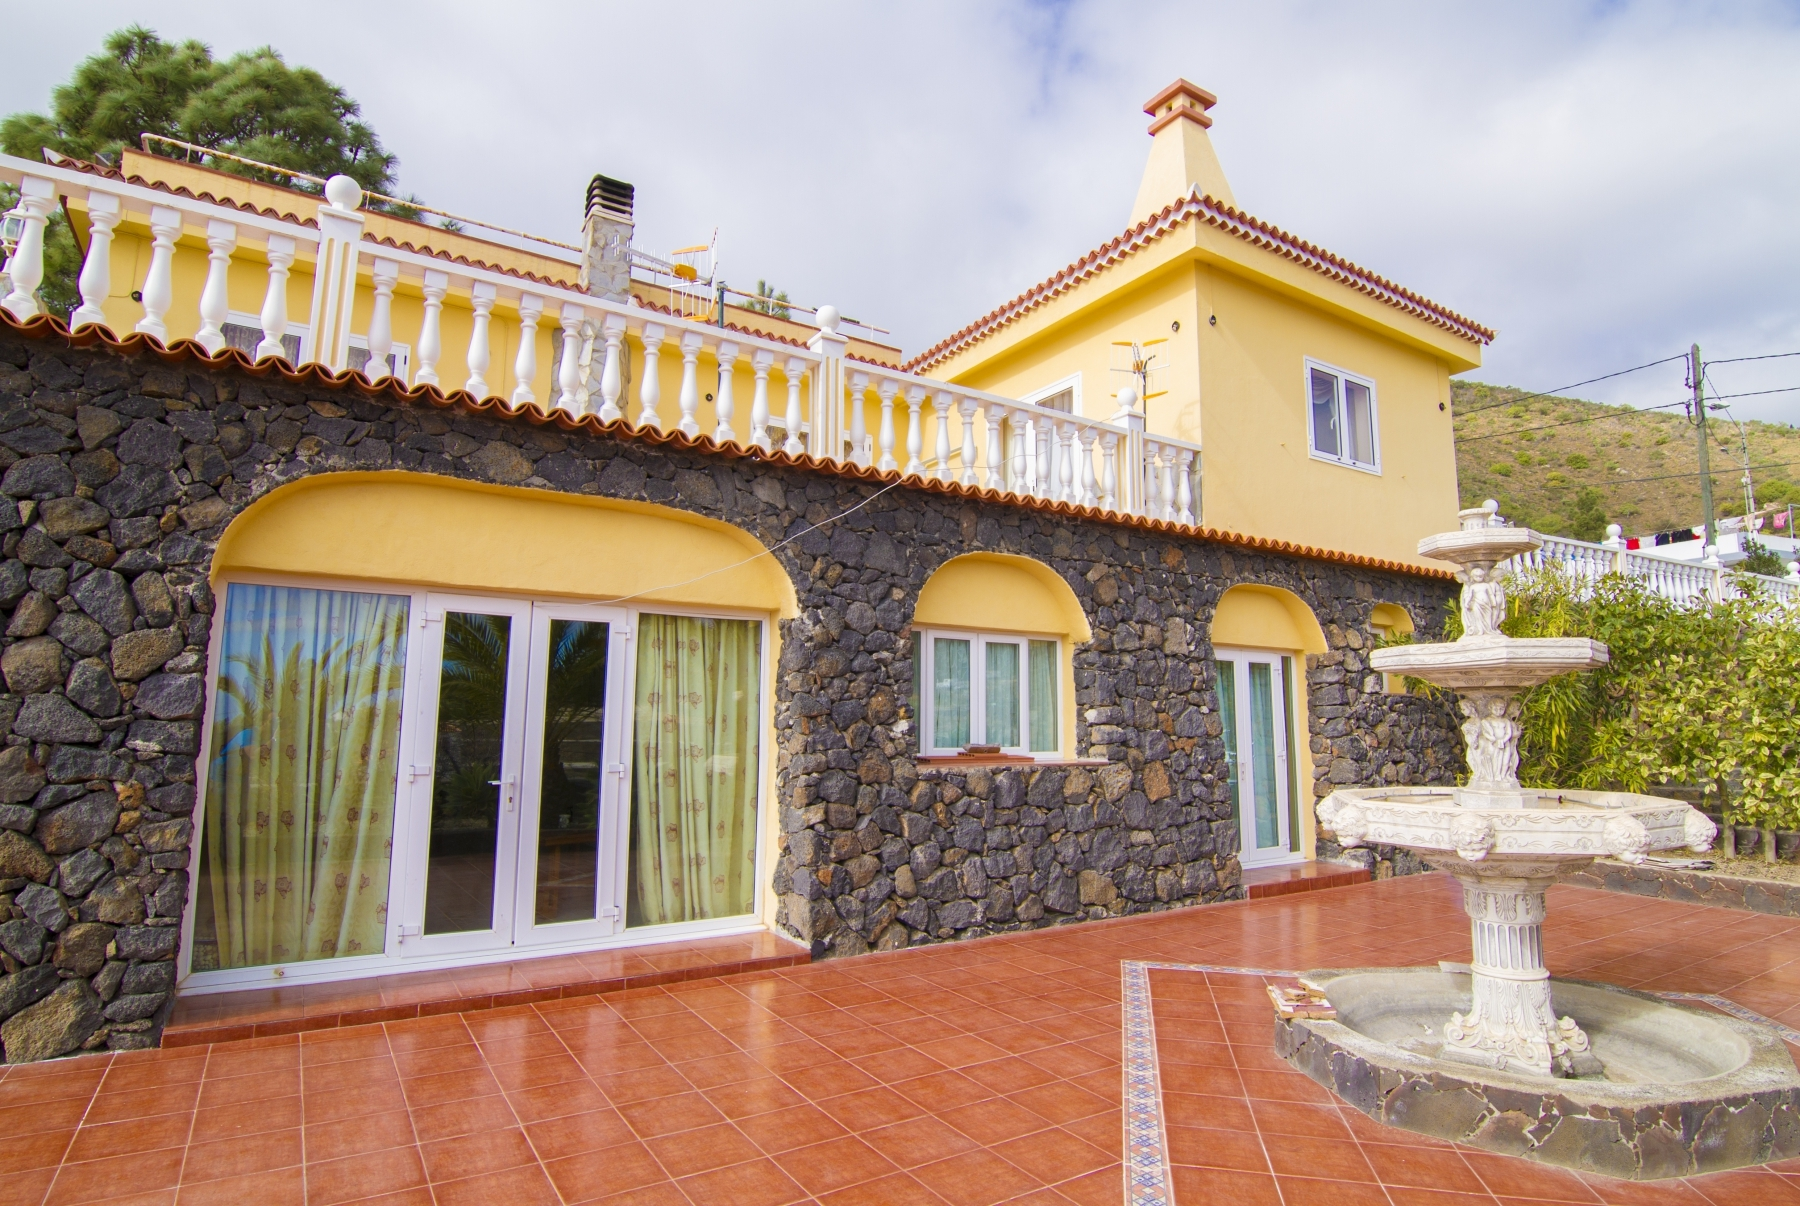 Properties for Sale in Tenerife, Canary Islands, Spain | SylkWayStar Real Estate. Finca with vineyard - Cruz de Tea - Granadilla de Abona . Image-21855